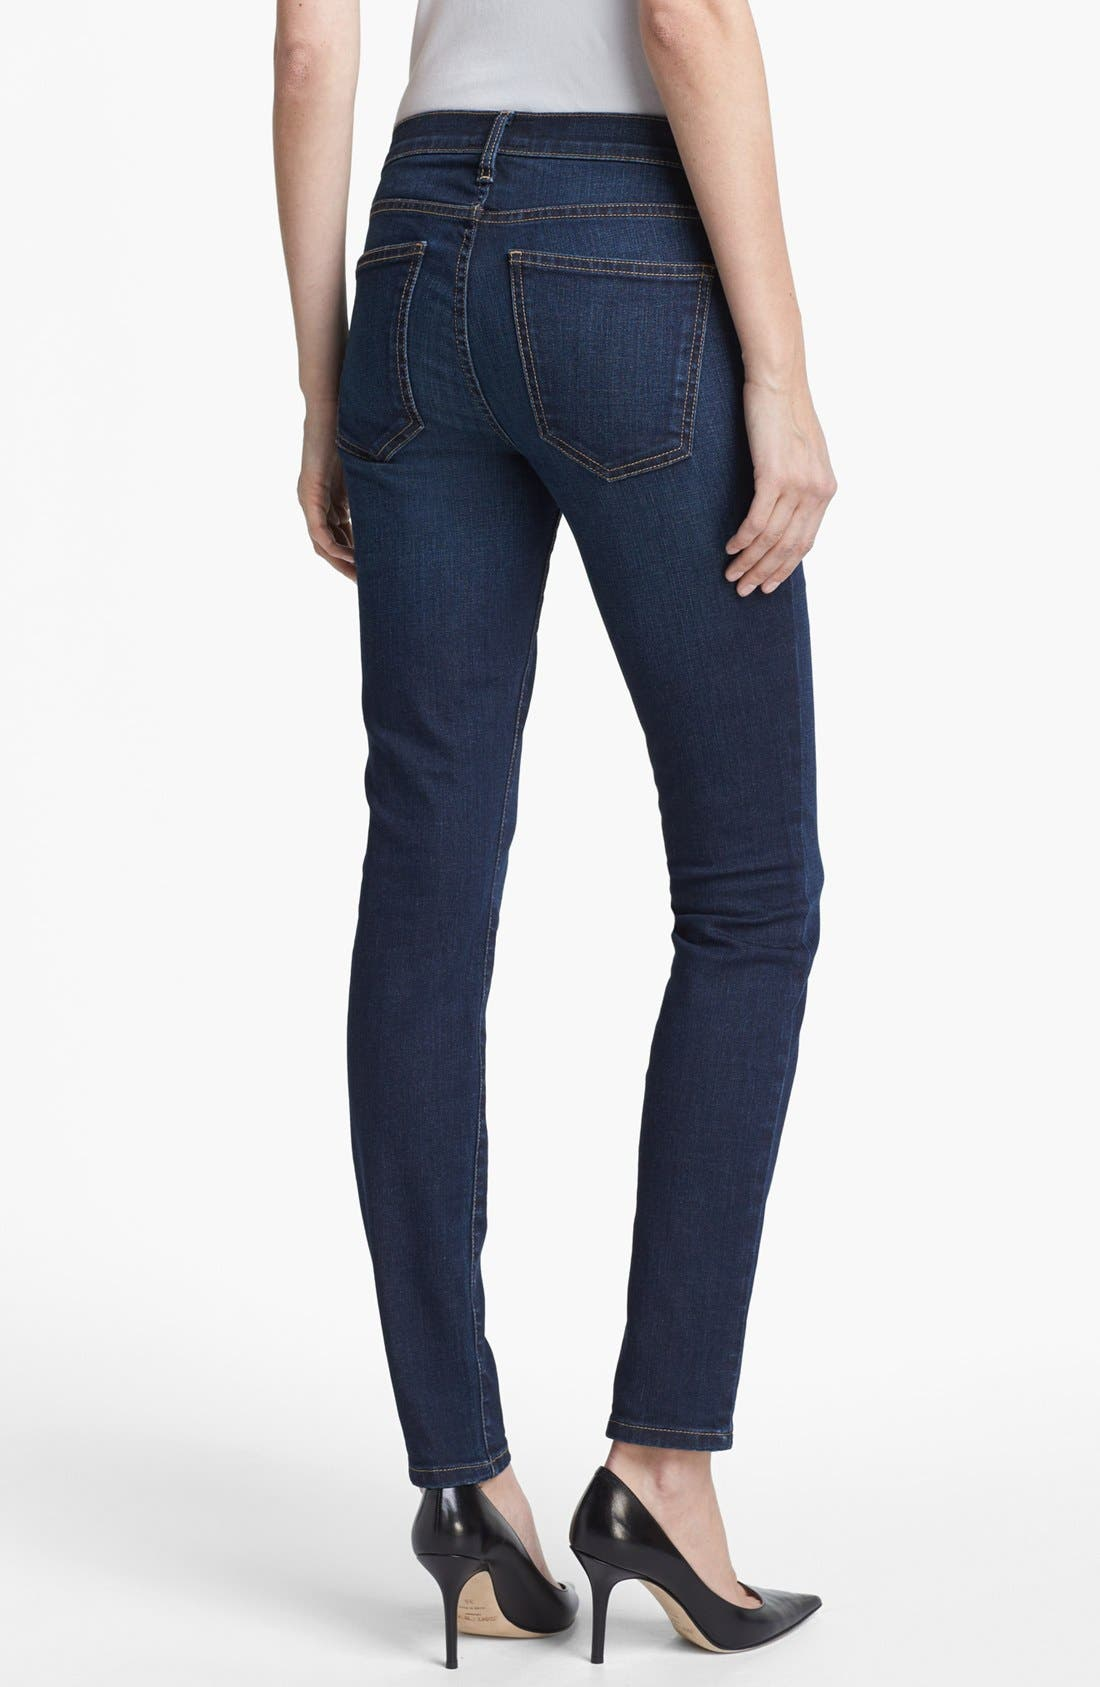 Alternate Image 3  - Current/Elliott 'The Ankle' Skinny Jeans (Nordstrom Exclusive)